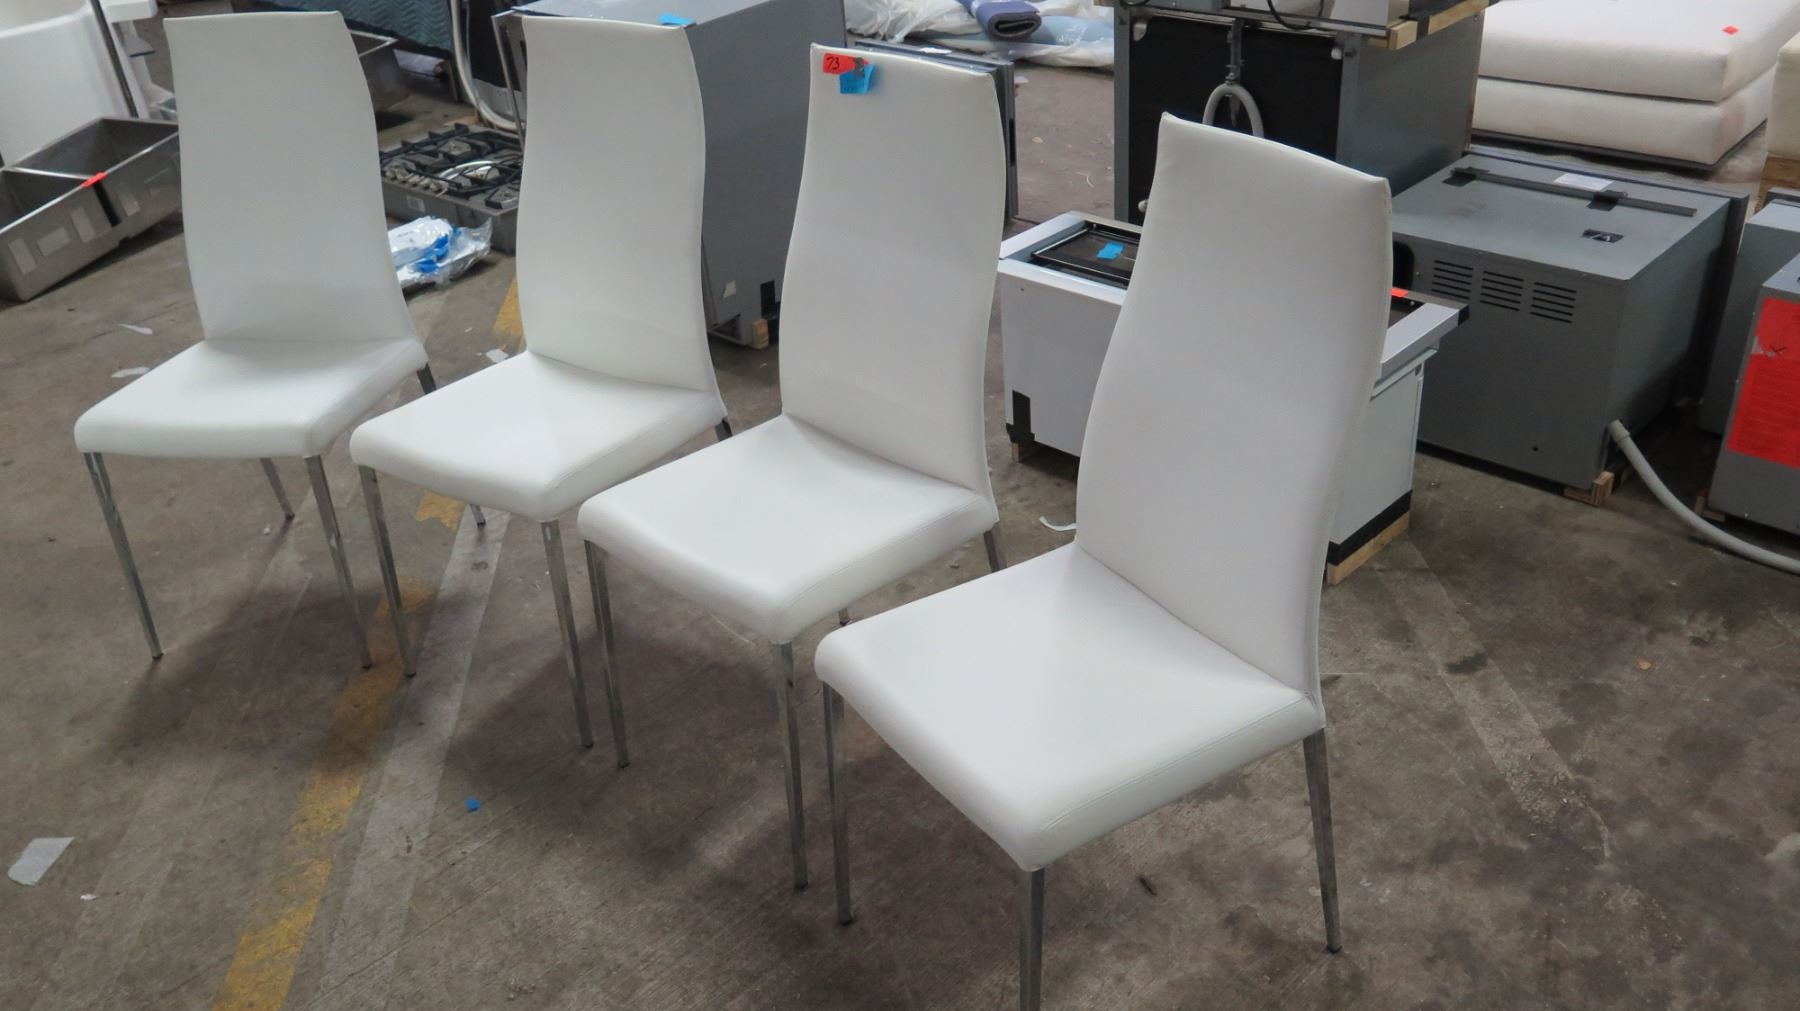 Swell Qty 4 White Leather Chairs From Cattelan Italia 18W 41 5 Ibusinesslaw Wood Chair Design Ideas Ibusinesslaworg